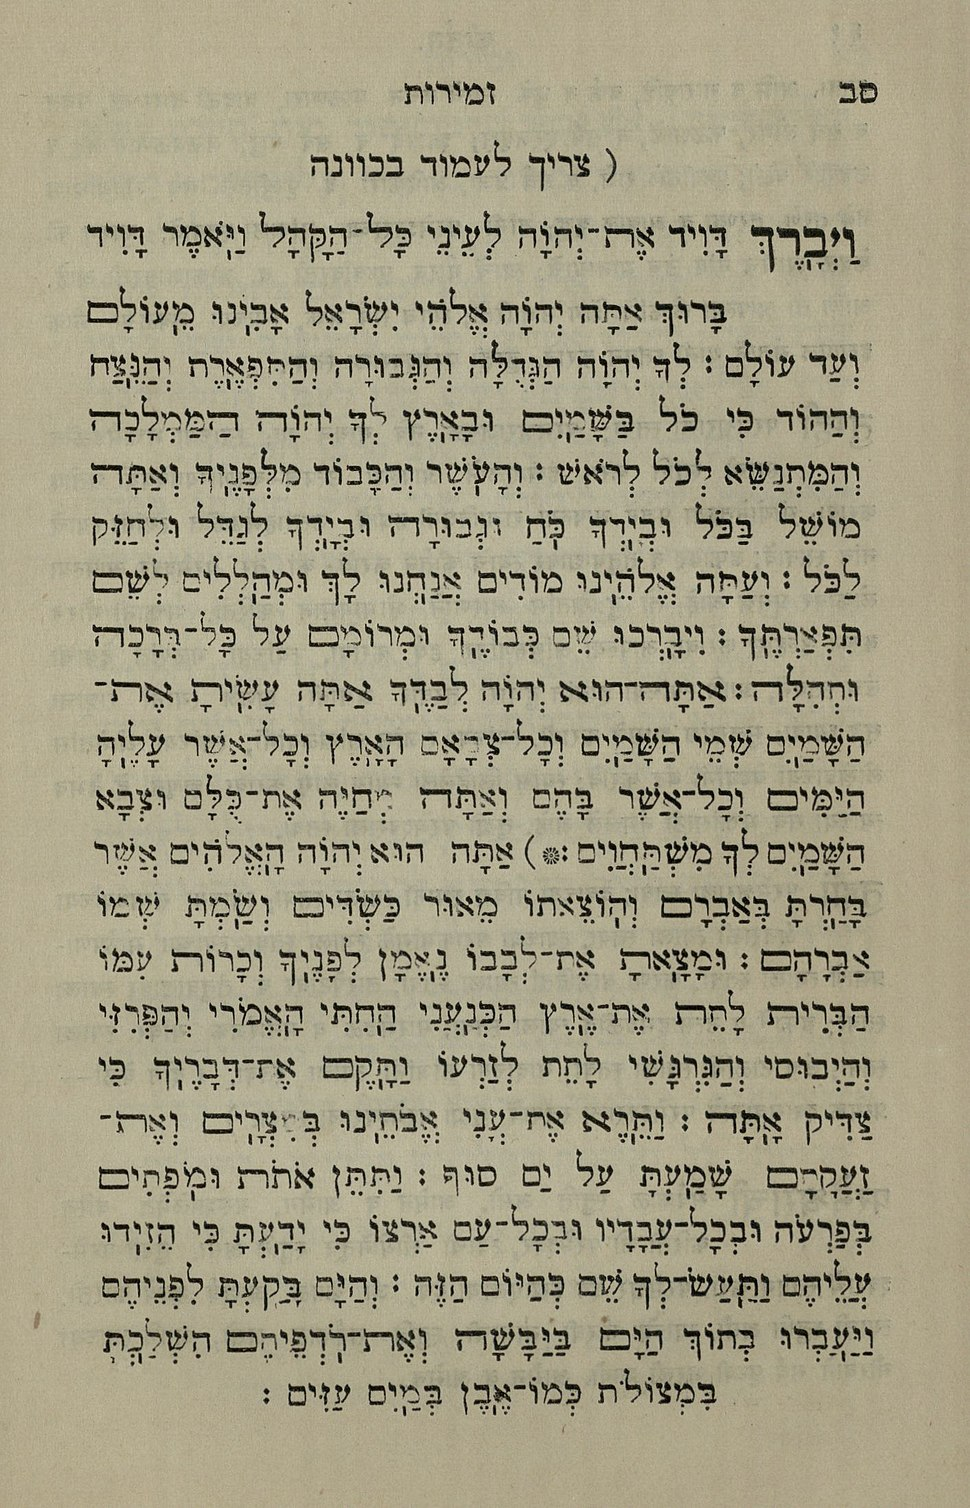 The National Library of Israel - The Daily Prayers translated from Hebrew to Marathi 1388622 2340601-10-0134 WEB